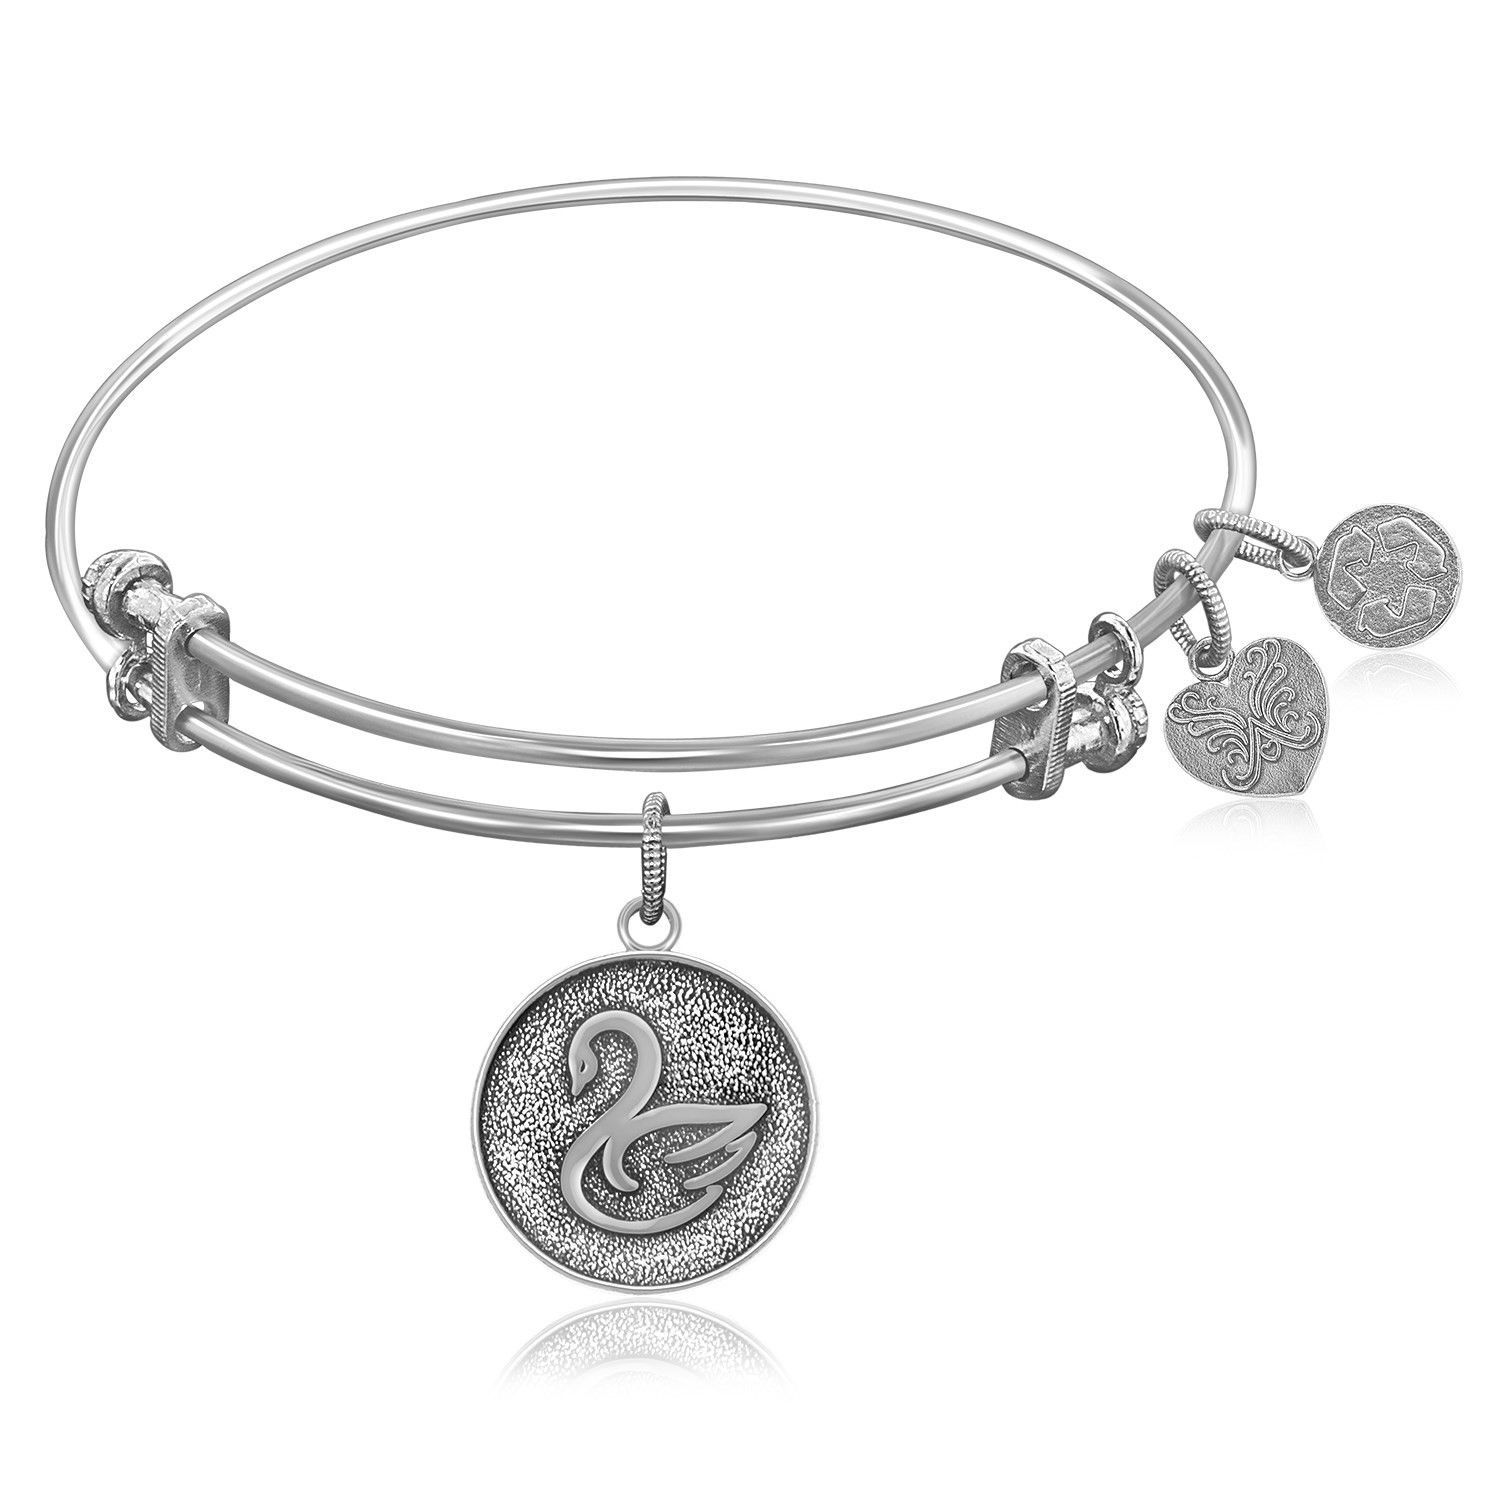 Expandable Bangle in White Tone Brass with Swan Symbol